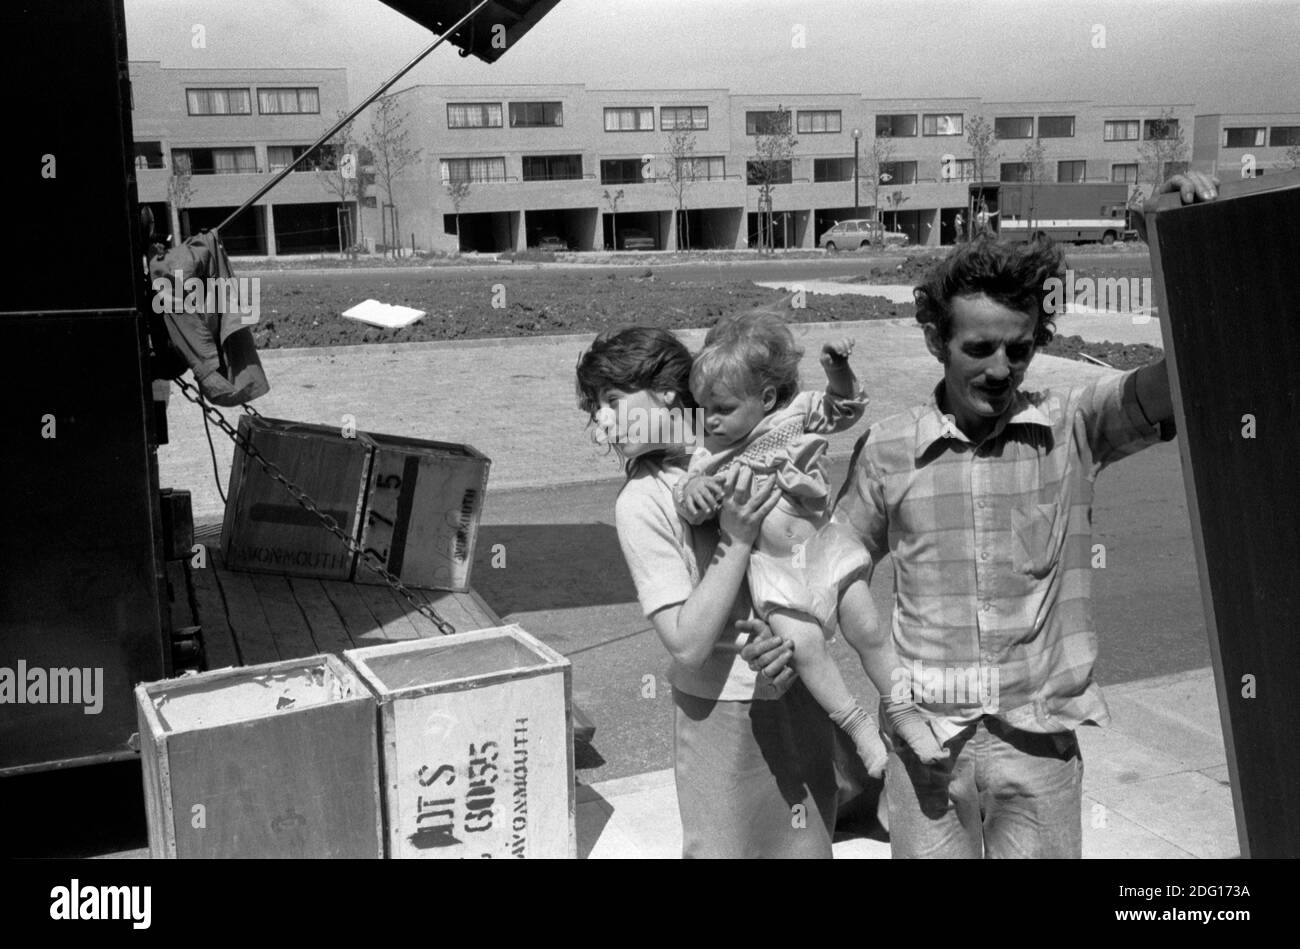 Moving house, family move into new home on a new estate1970s .Father and oldest daughter who is carrying her baby sister. Packing cases, old tea chests coming off the removal van. 1977  Milton Keynes Buckinghamshire UK HOMER SYKES Stock Photo